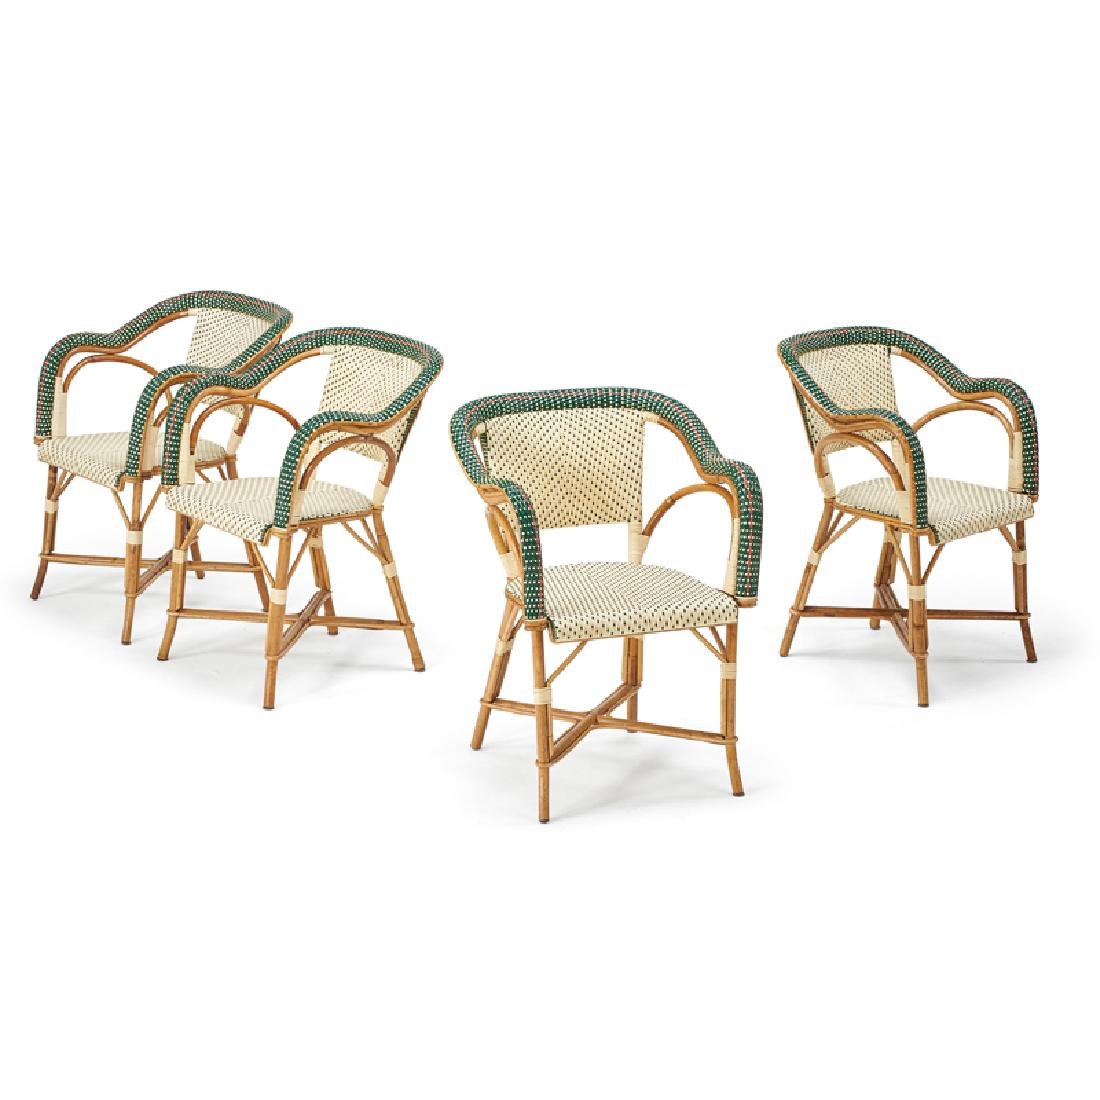 SET OF FOUR RATTAN ARMCHAIRS